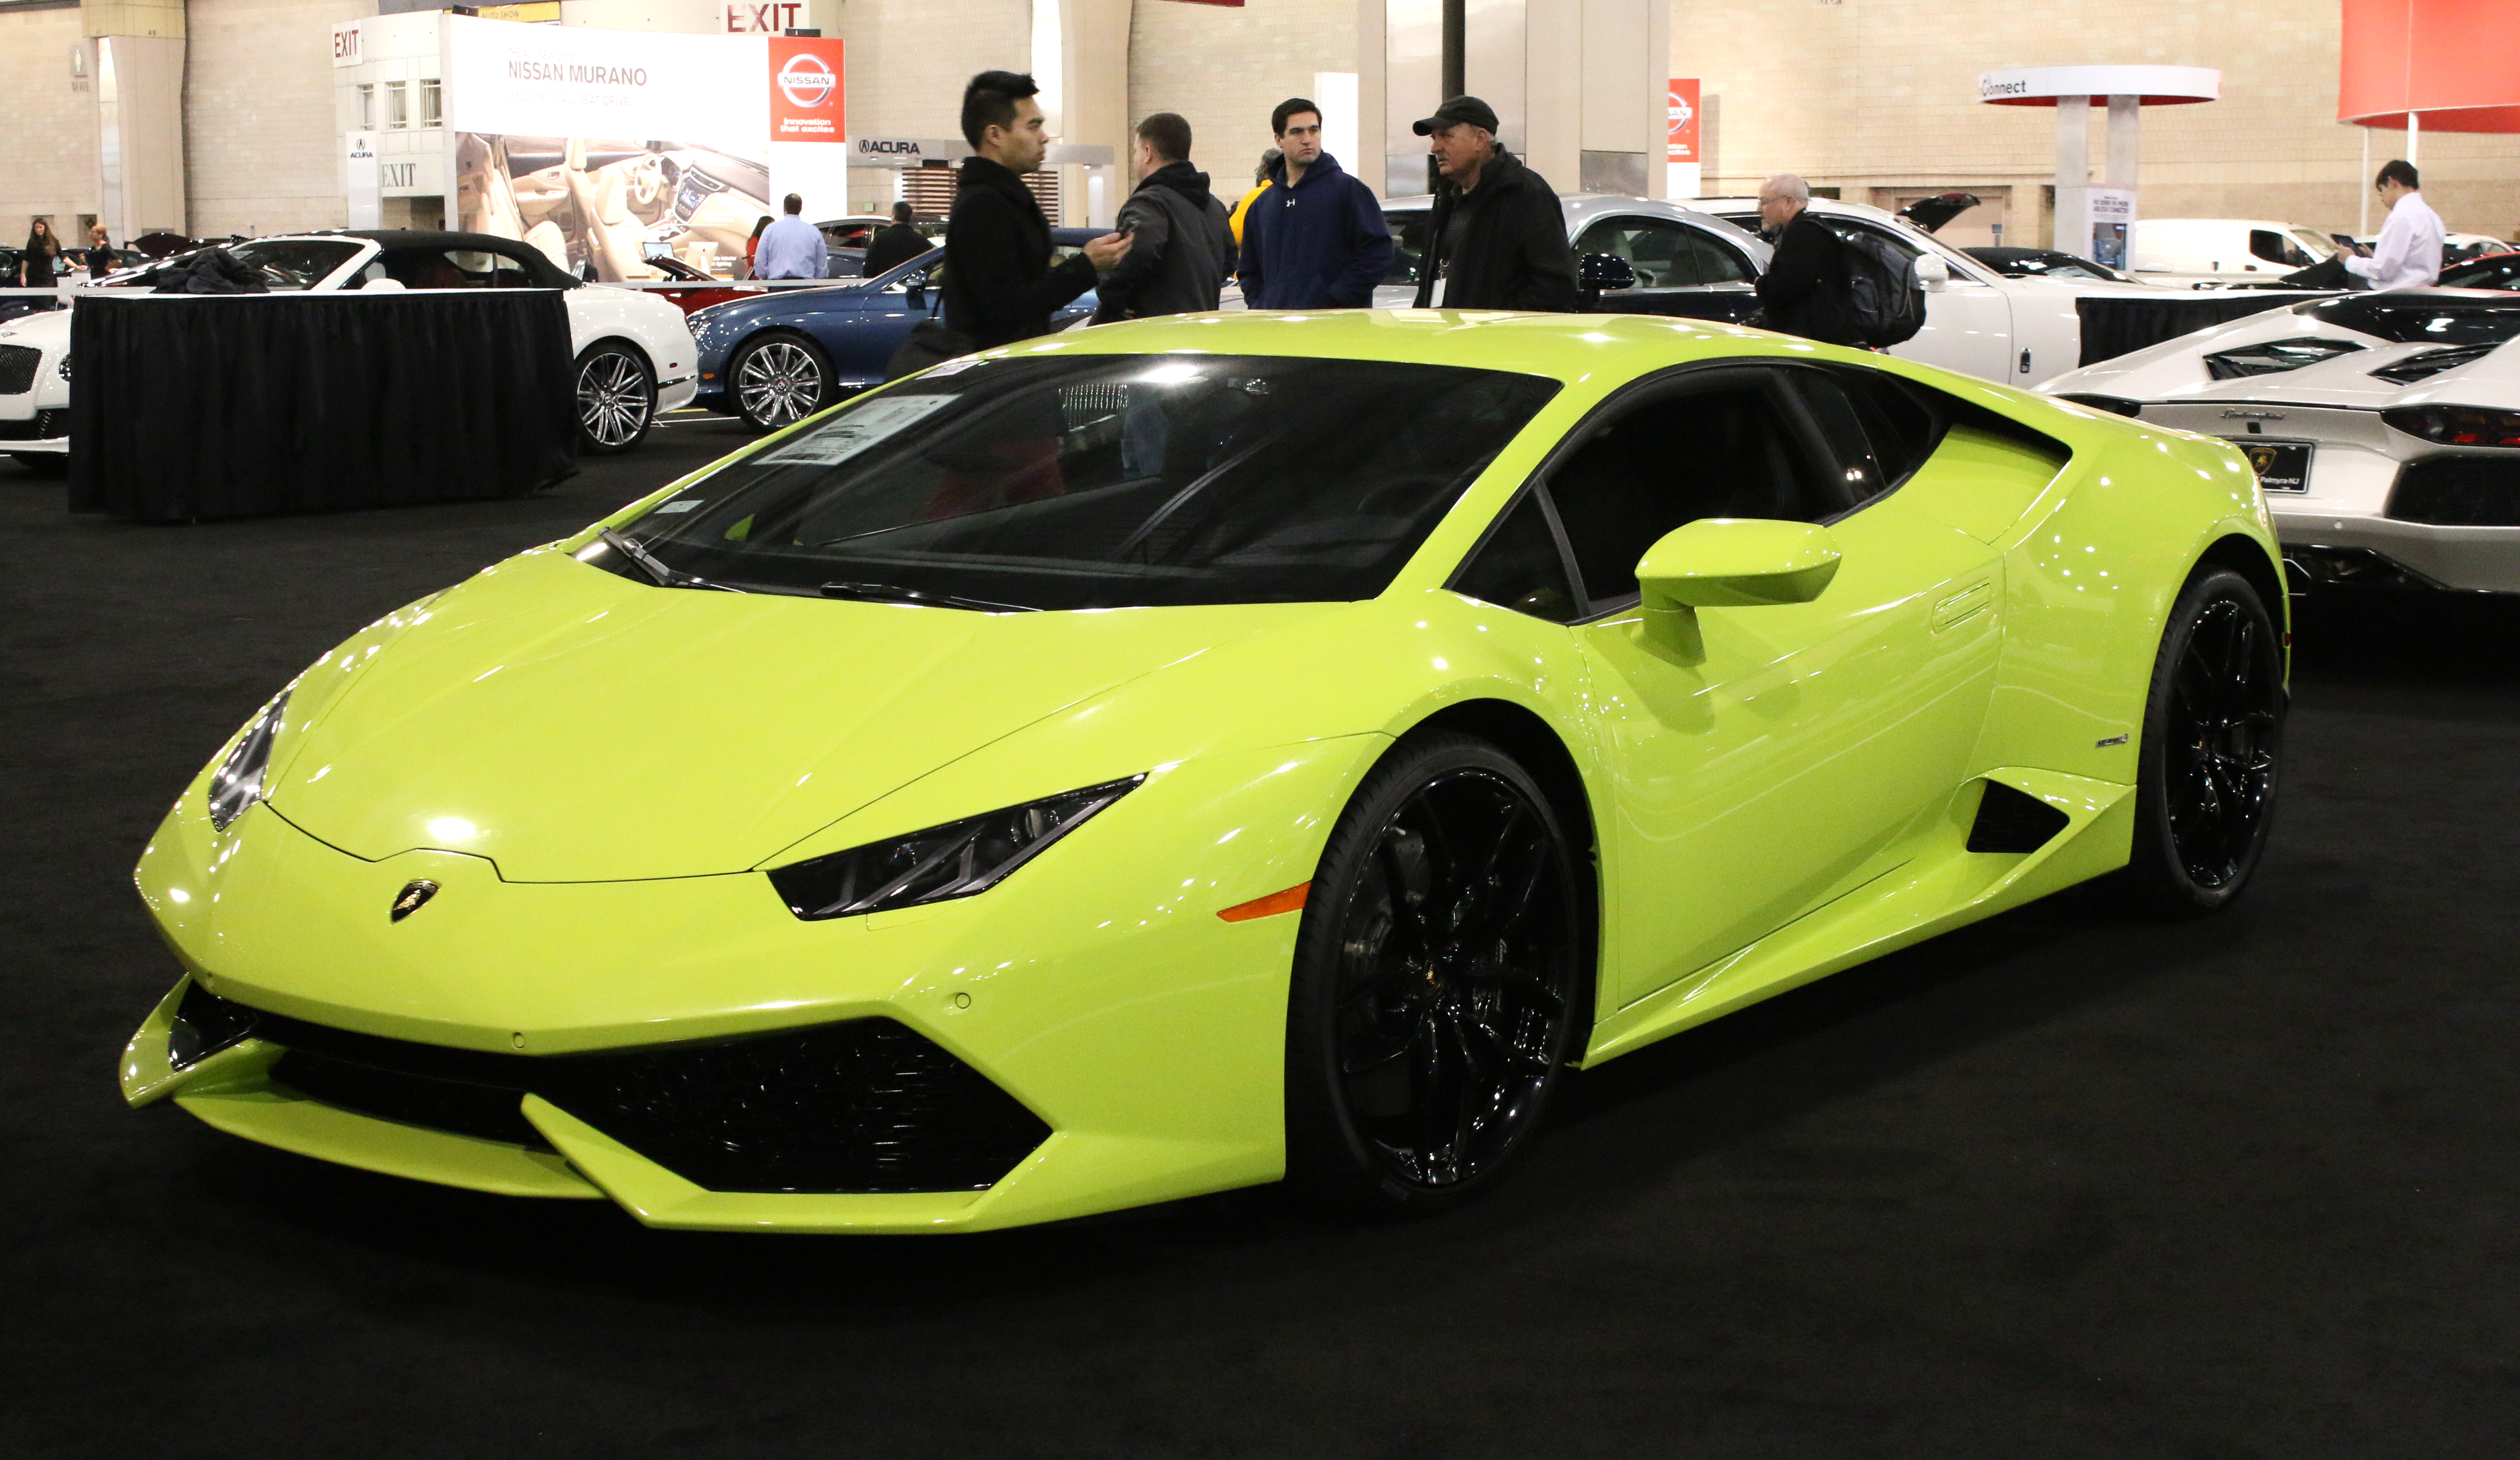 Philly Car Show: Philly Auto Shows Zooms In This Weekend